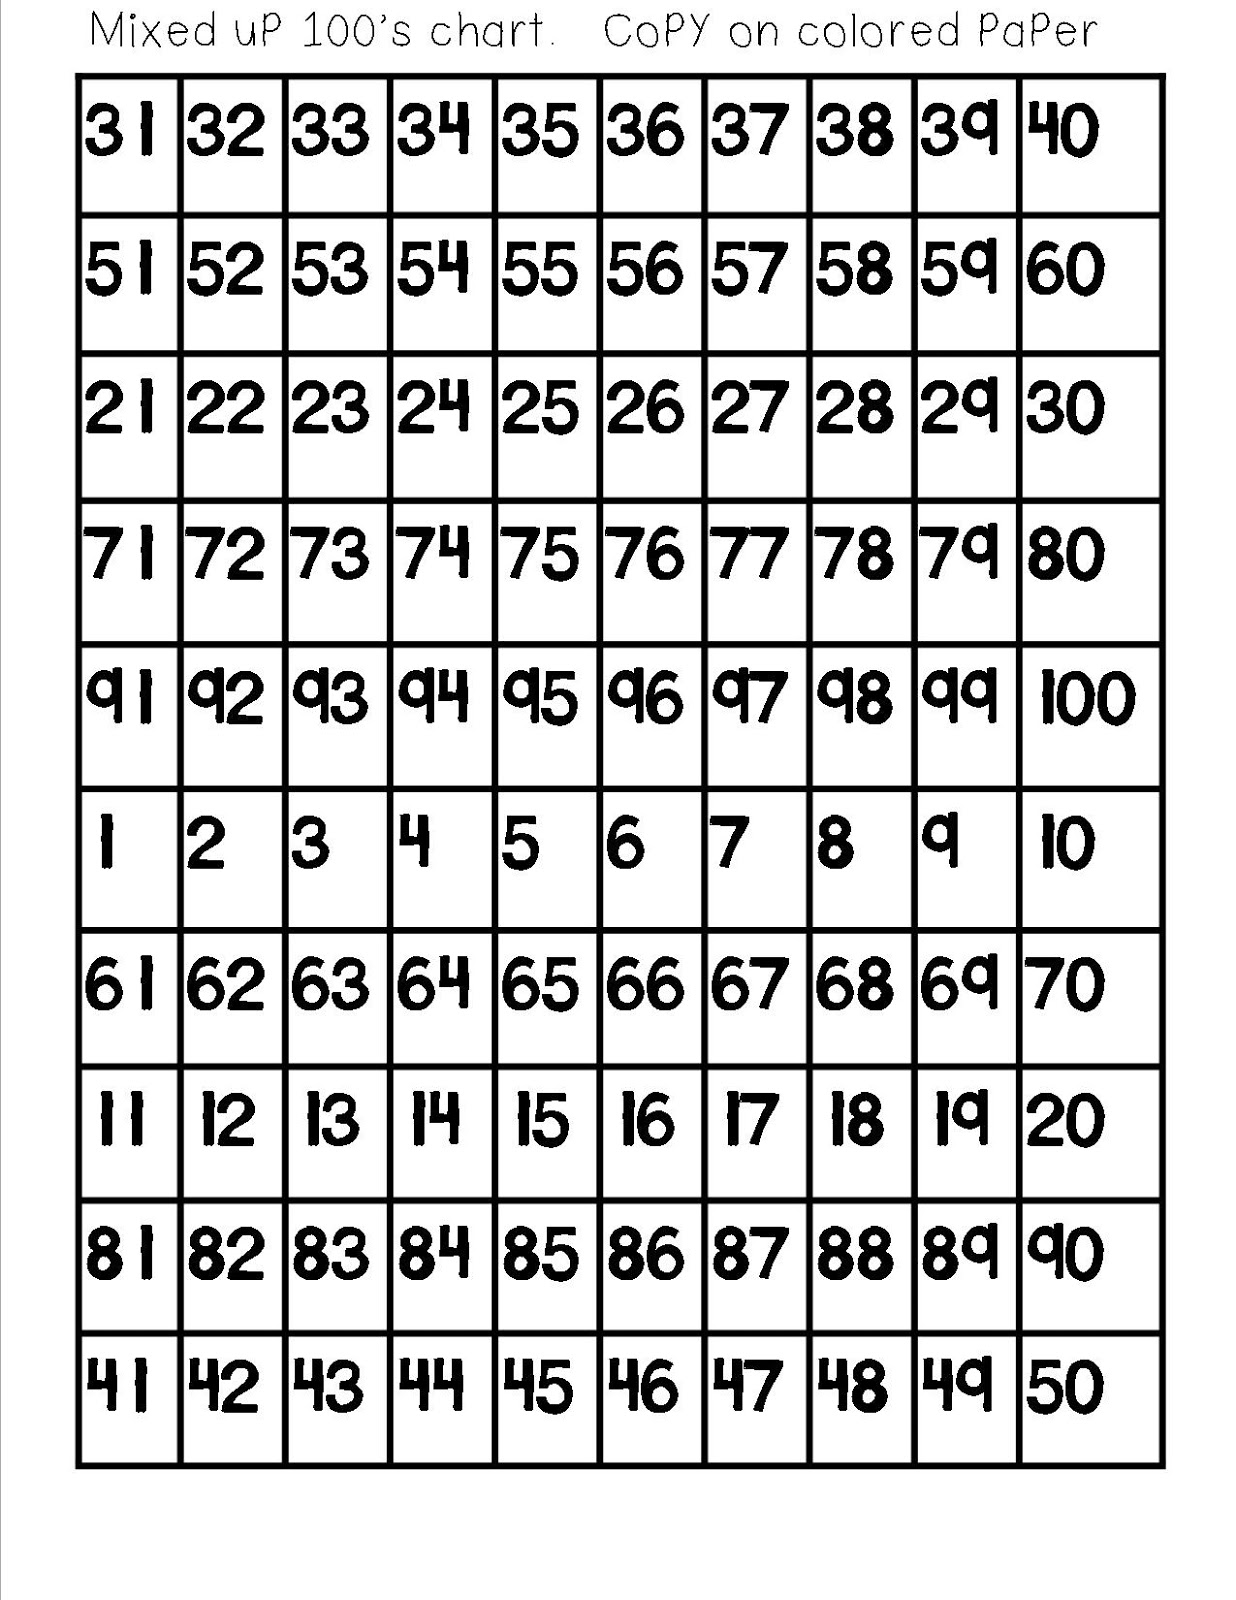 ... Blank 1 100 Chart, Blank 100 Number Chart, Blank Hundreds Grid Chart